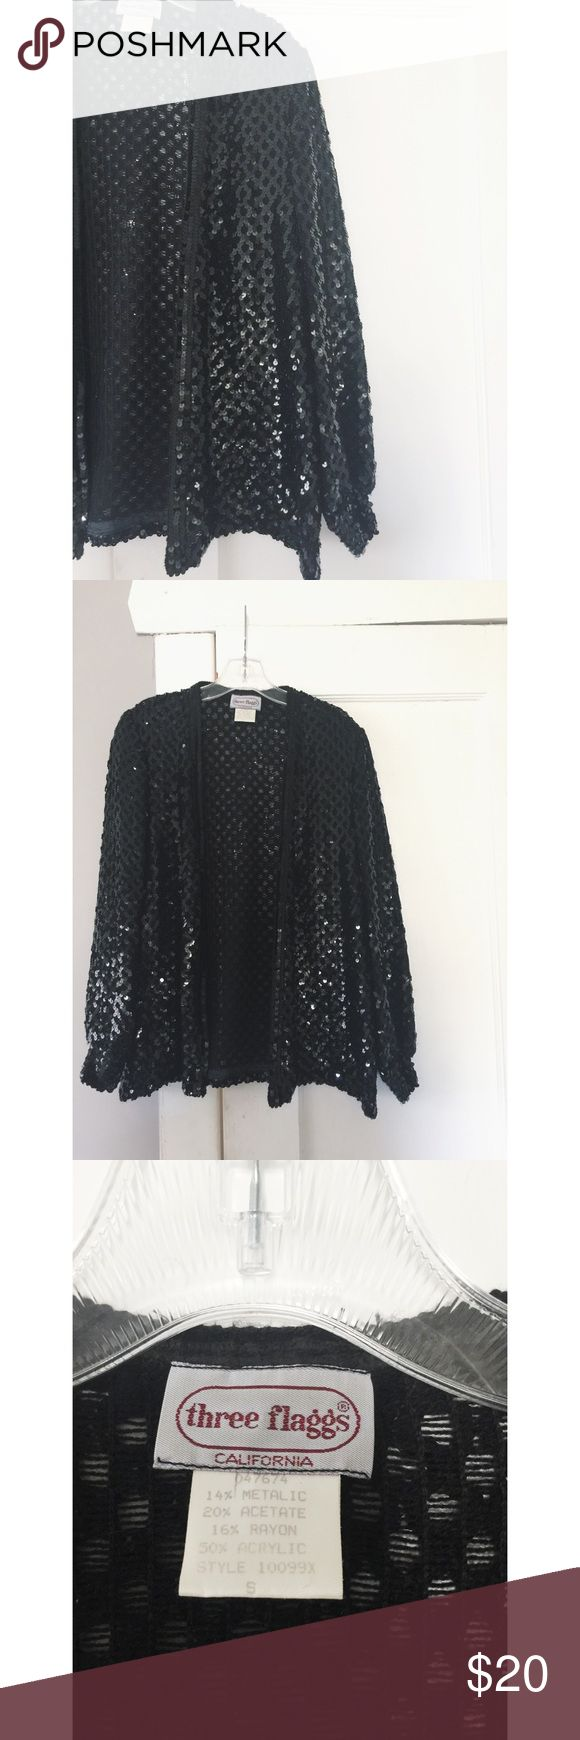 Vintage Sequin Cardigan Vintage Sequin Cardigan, all over black sequins.  Baggy cute fit.  Women's size small. Vintage Sweaters Cardigans